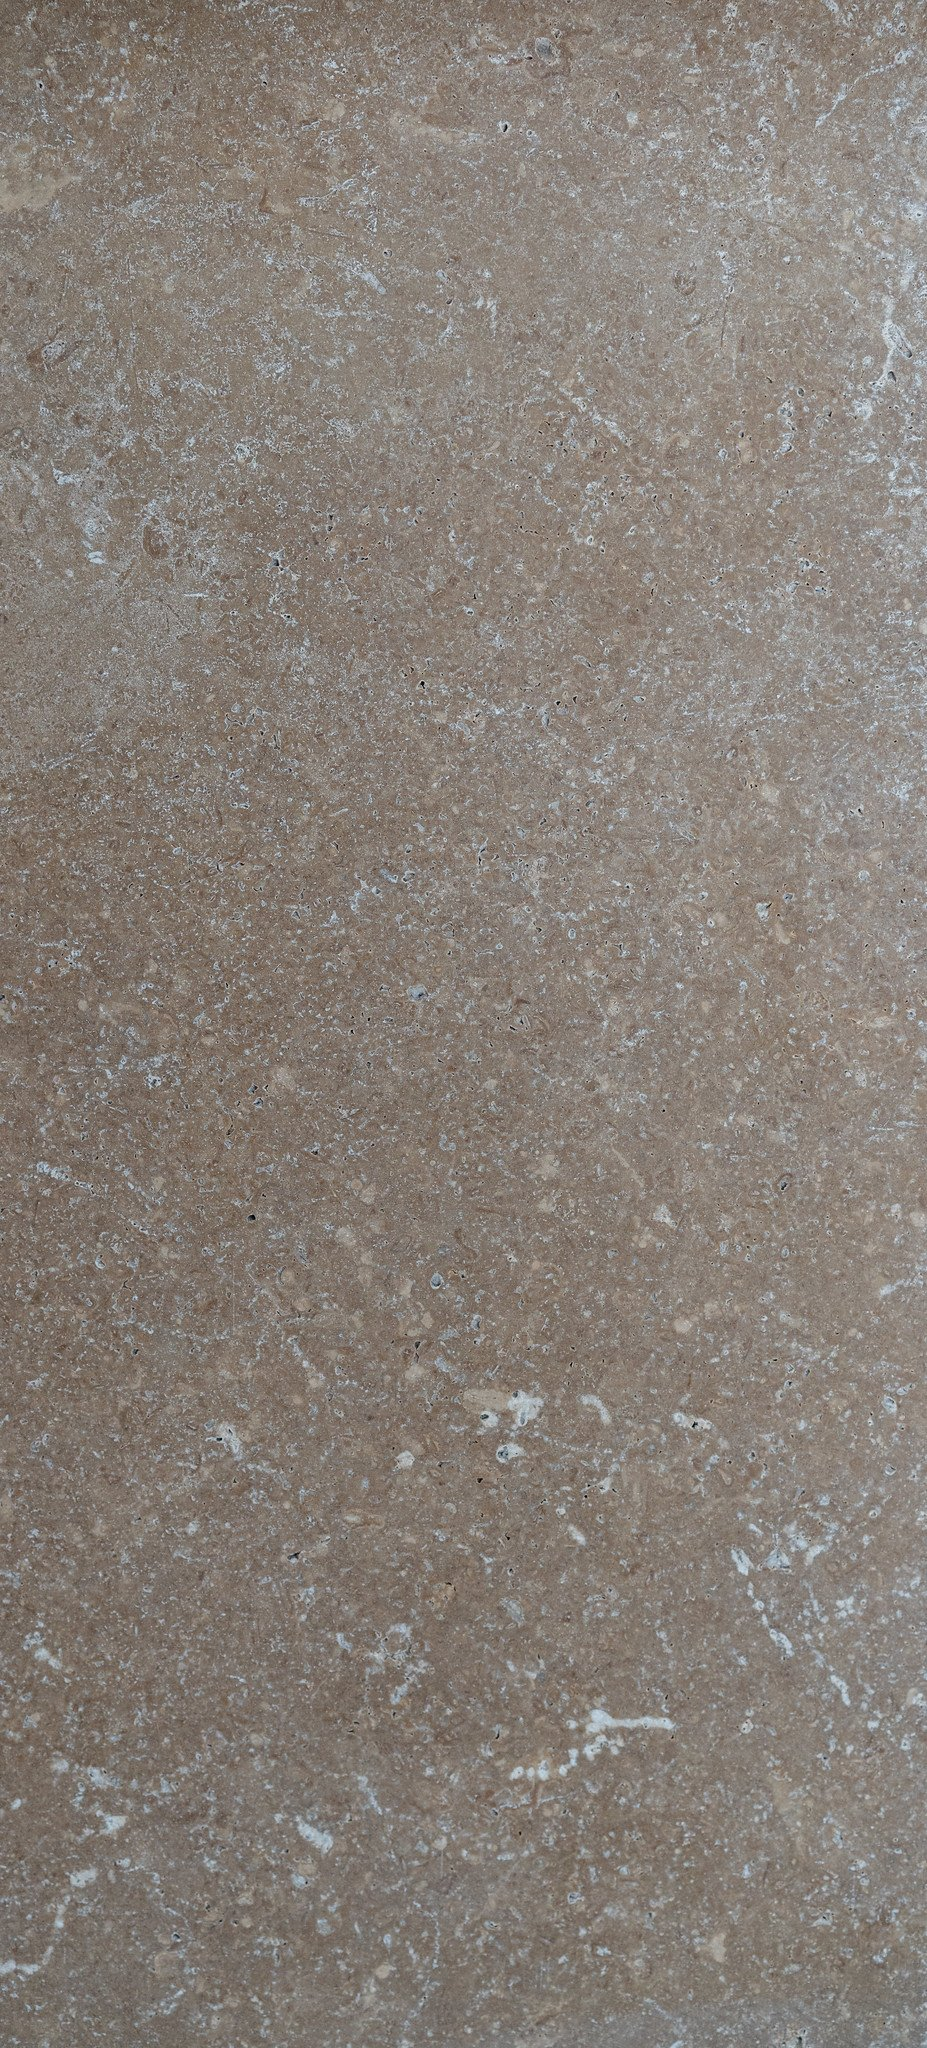 Travertine Noche Cross Cut Filled Antique Finish